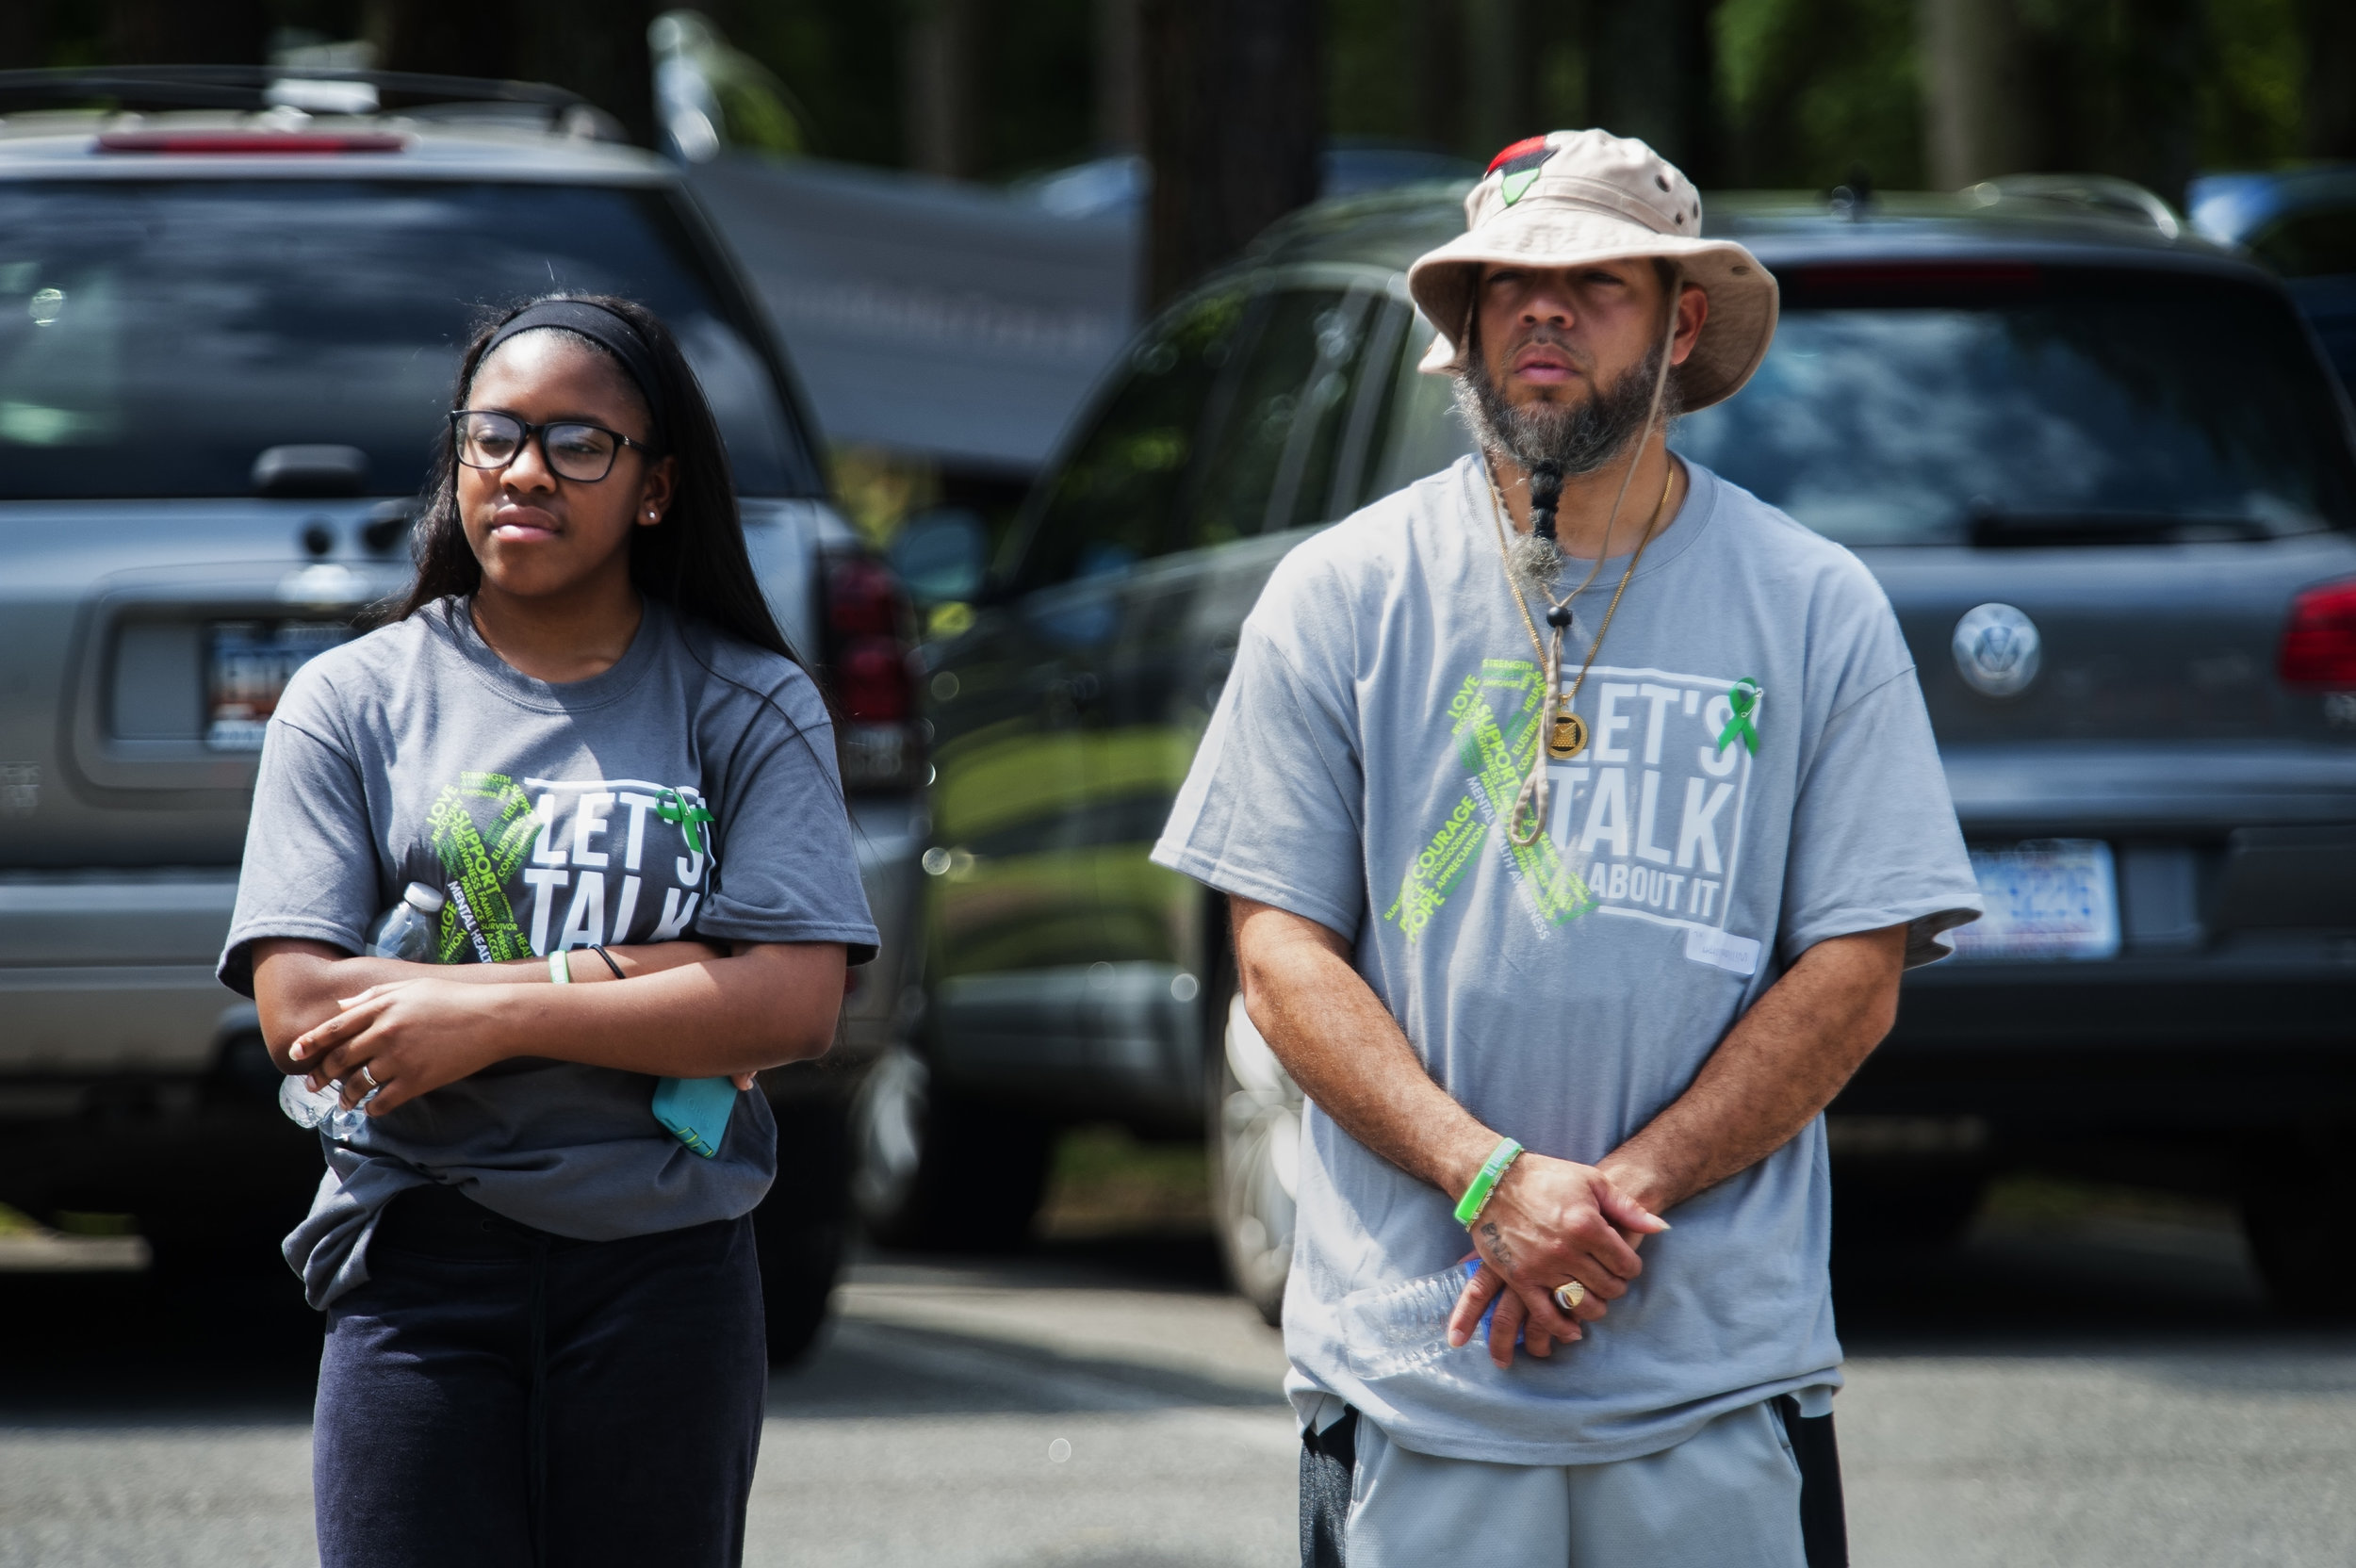 2nd Annual Let's Talk About It Mental Health Awareness Walk @ Park Rd Park 5-20-17 by Jon Strayhorn 143.jpg